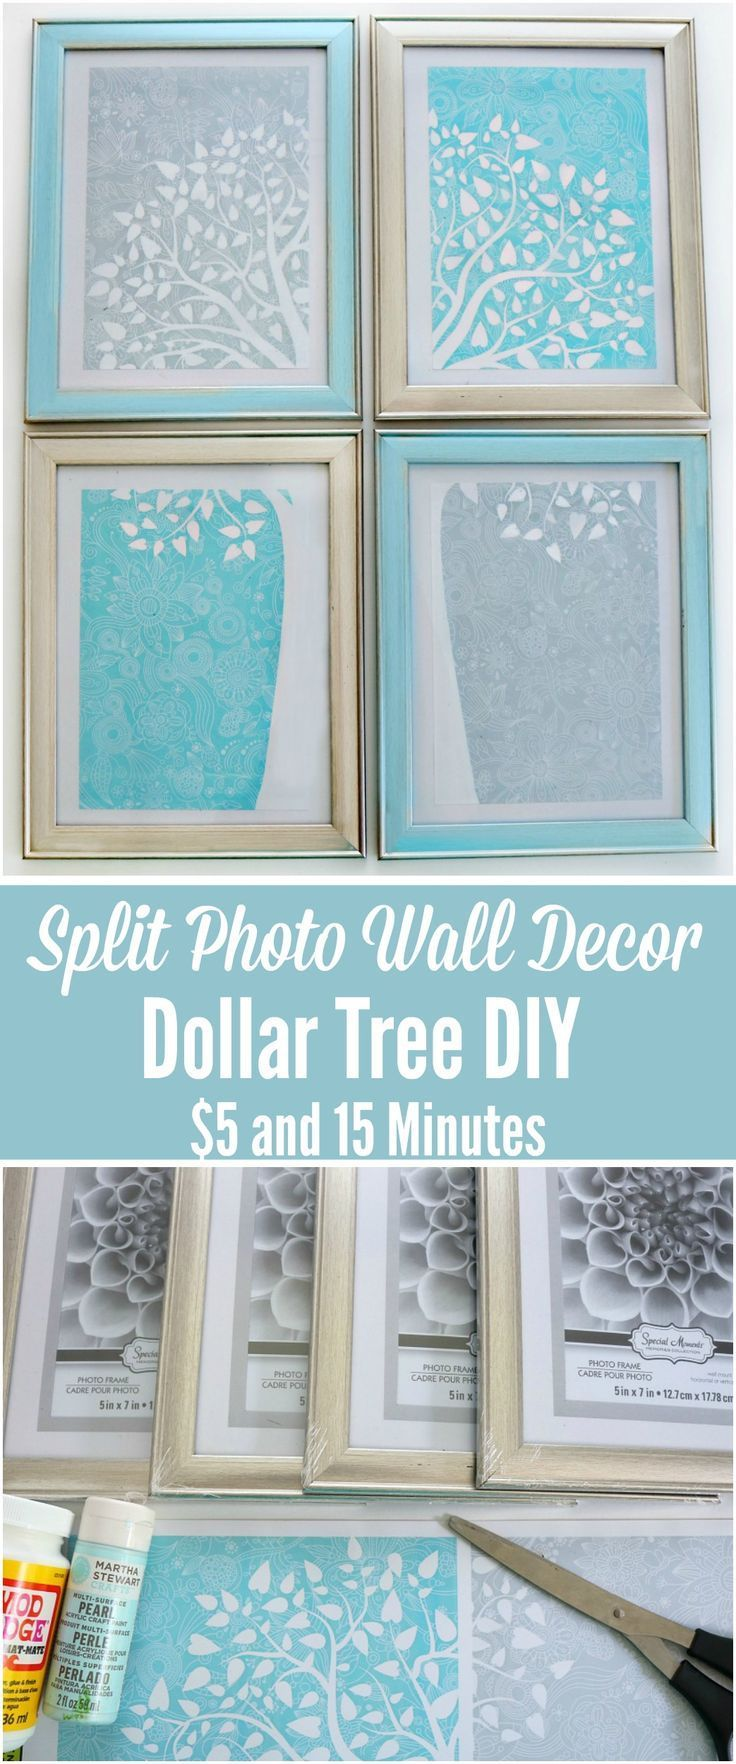 Everyone loves an easy inexpensive Dollar Tree DIY! Come